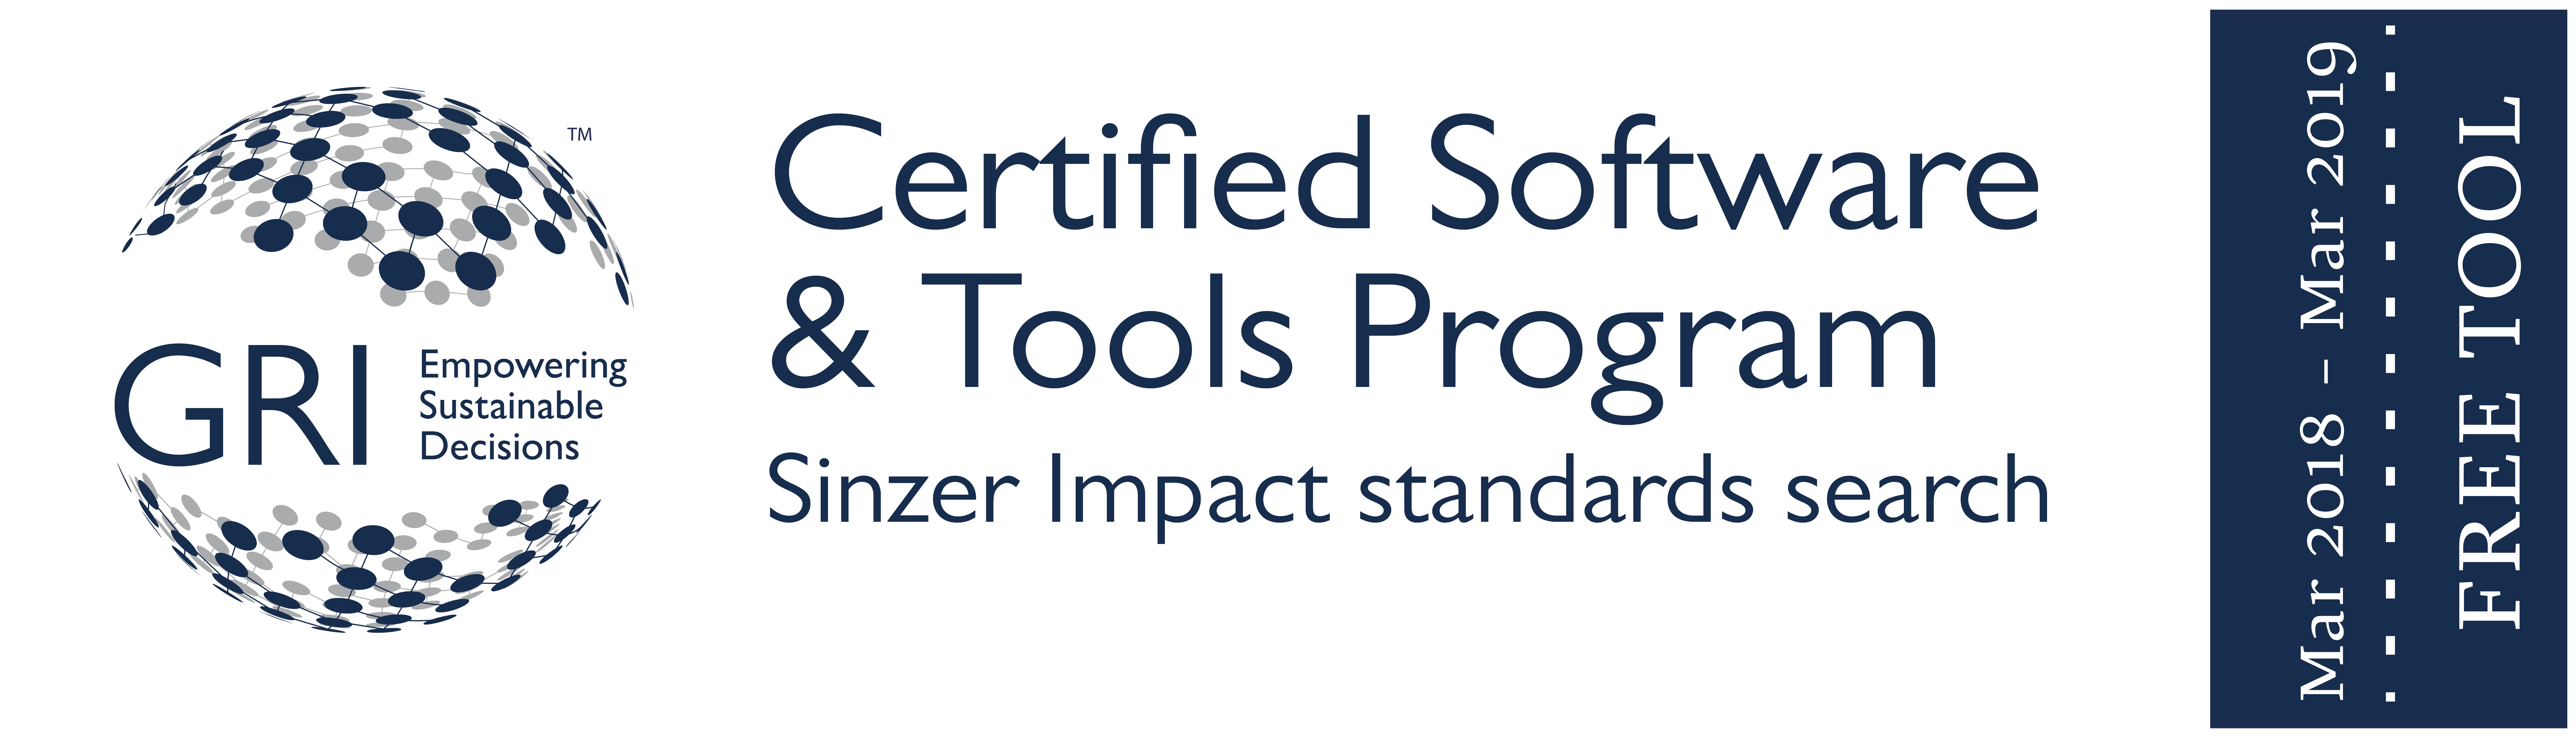 Certified Software and tools program-reversed1 CMYK (1).png